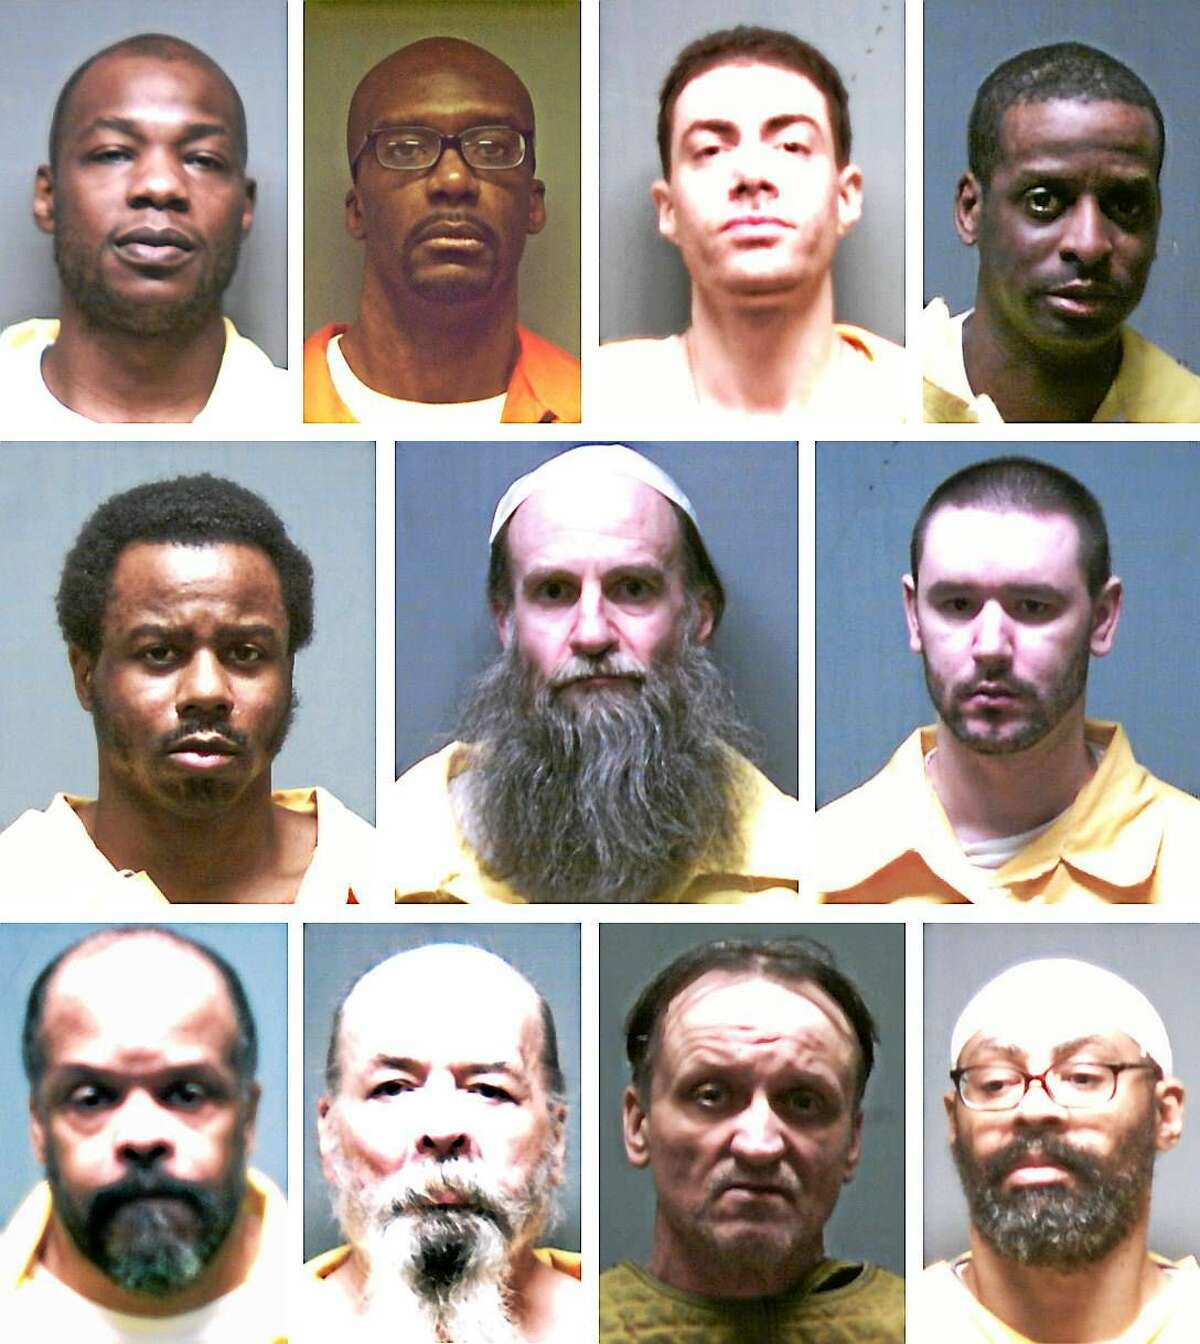 The 11 inmates on death row in Connecticut. Photos provided by the Connecticut Department of Correction.